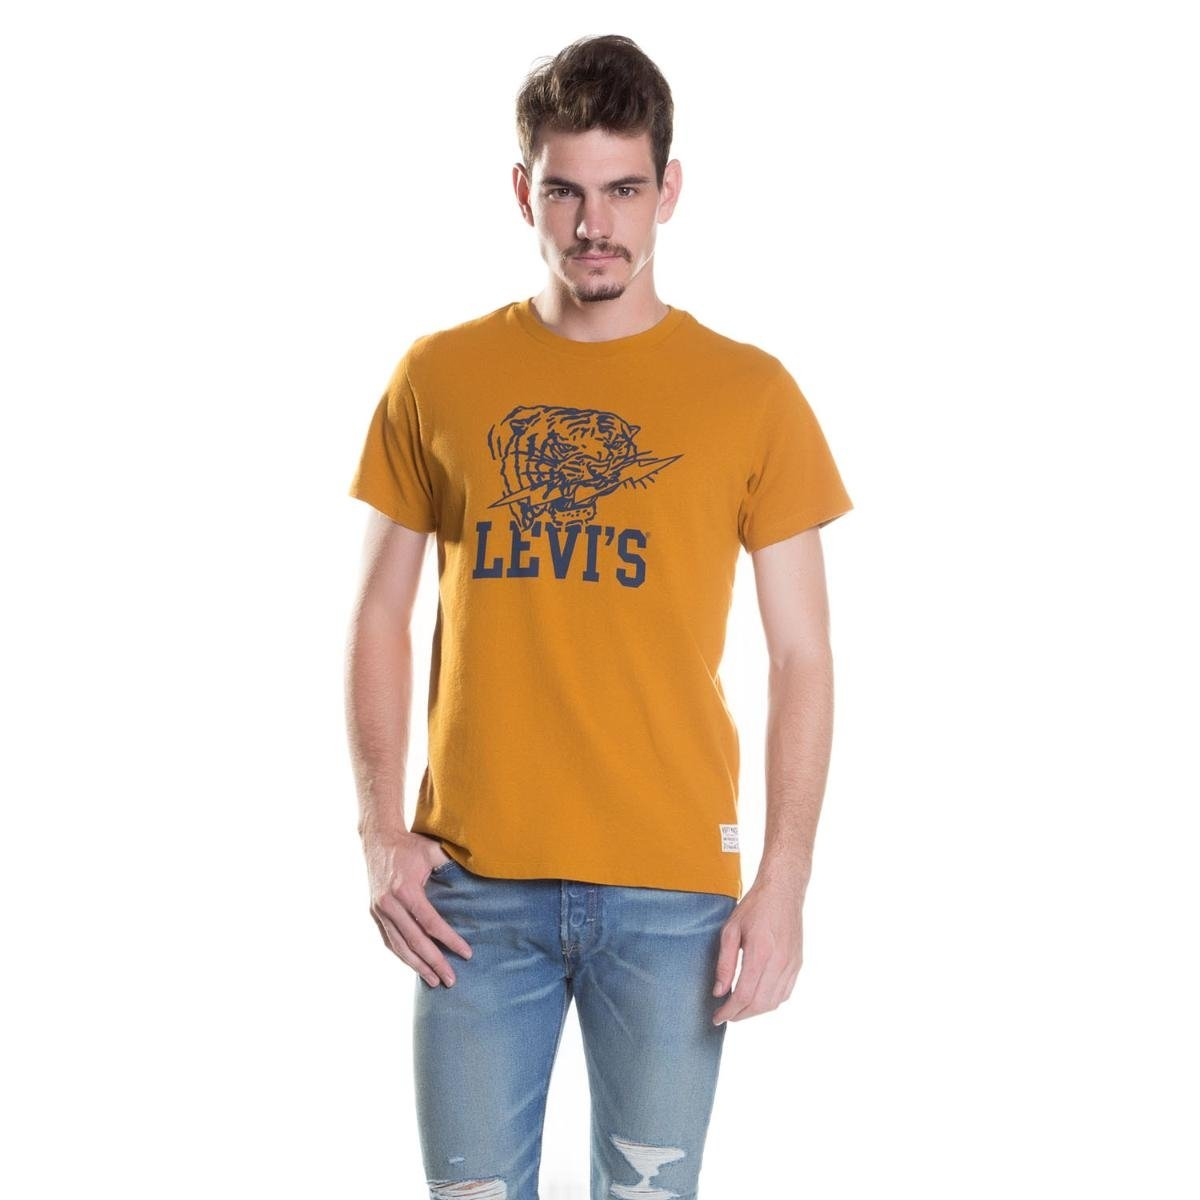 Camiseta Levis Sunset Mighty Graphic - Compre Agora  852812080a9